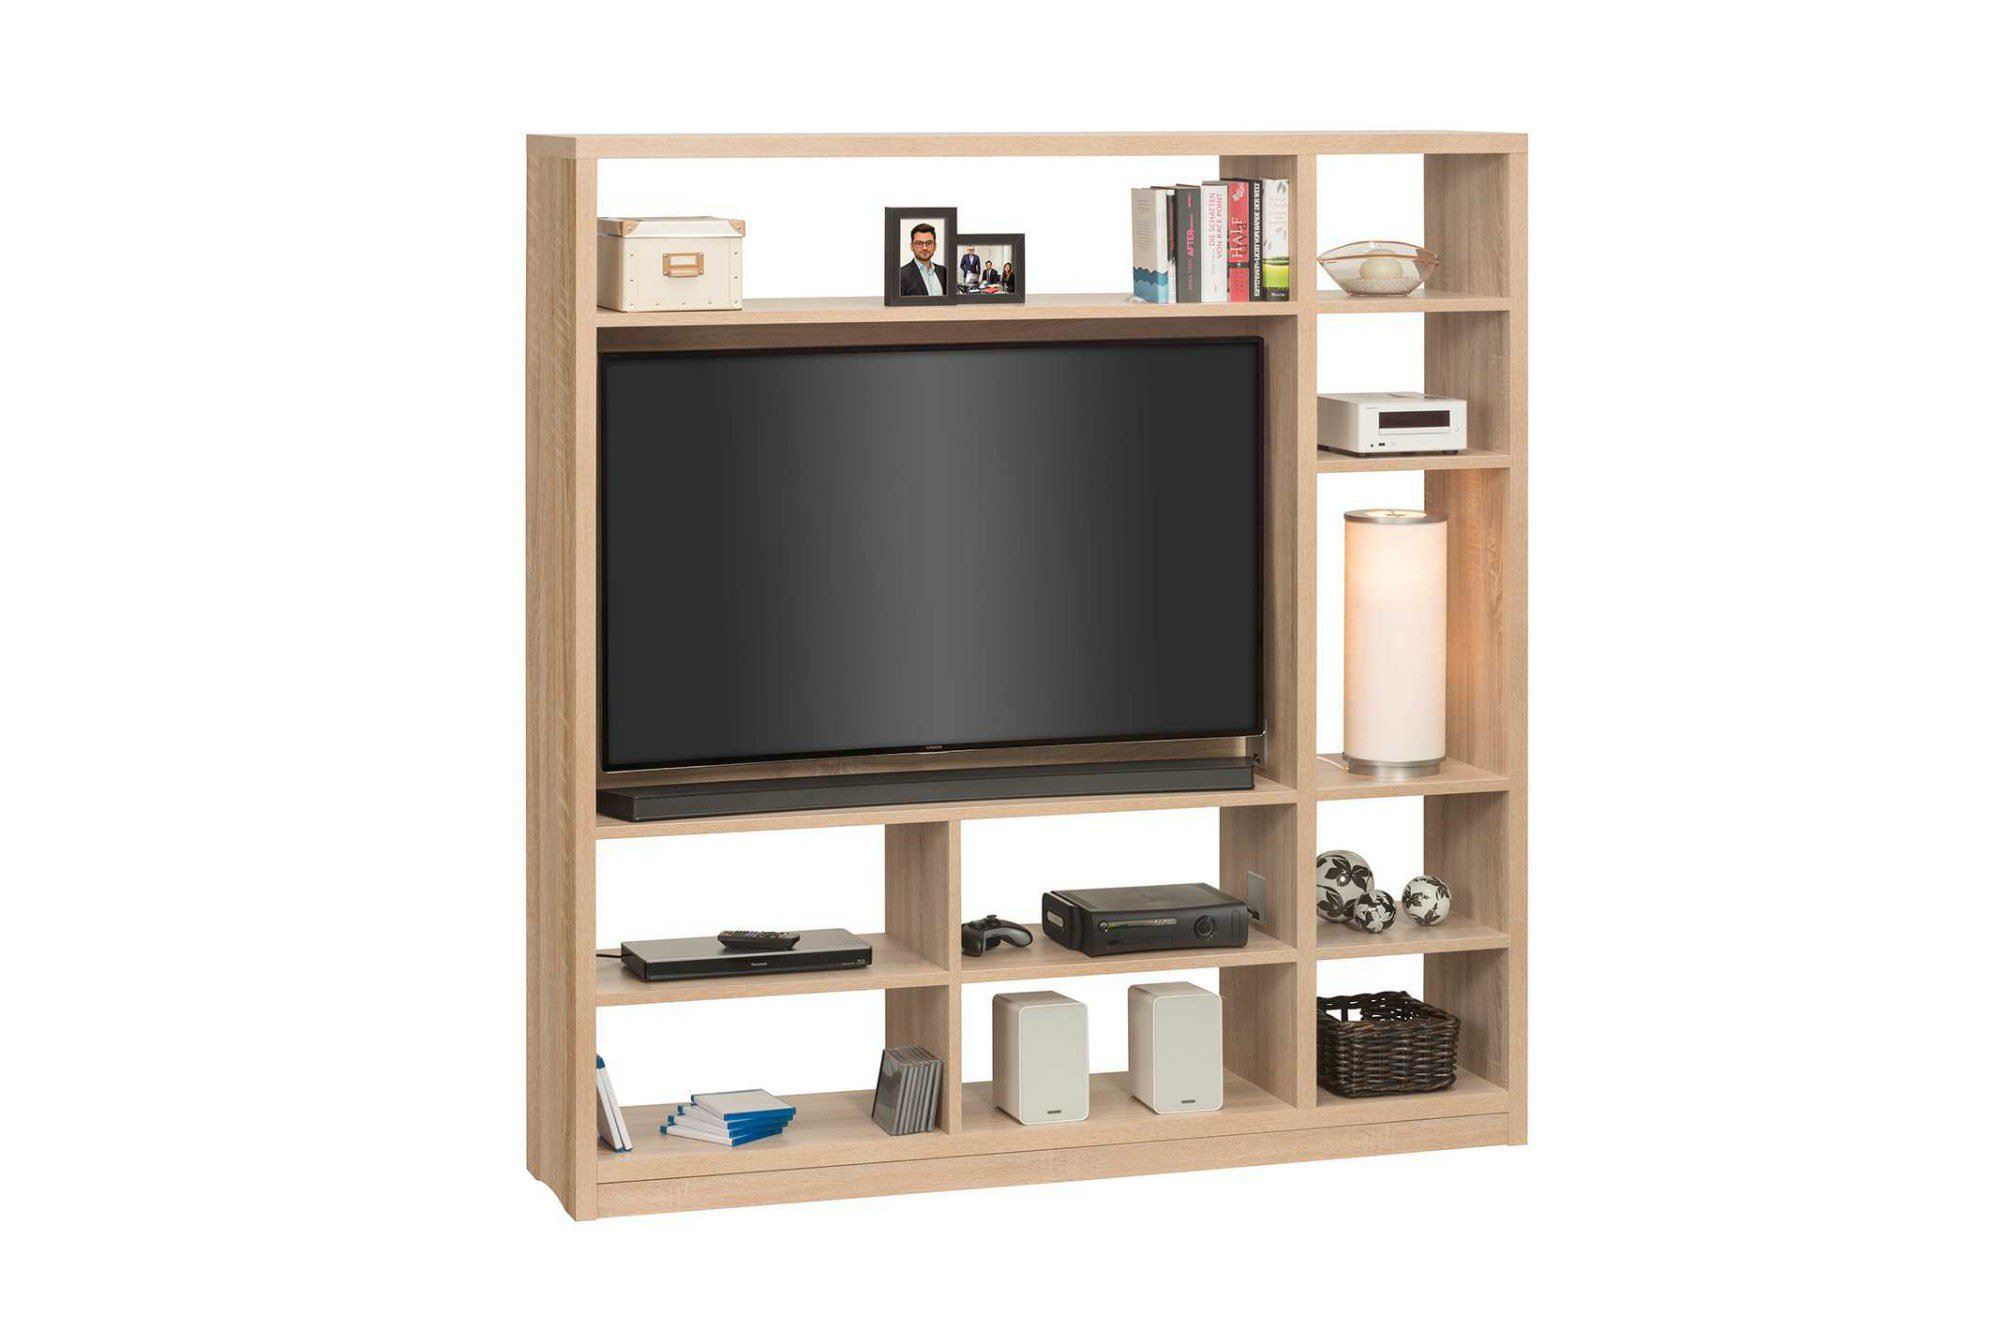 maja m bel raumteiler cableboard mit tv halterung m bel. Black Bedroom Furniture Sets. Home Design Ideas